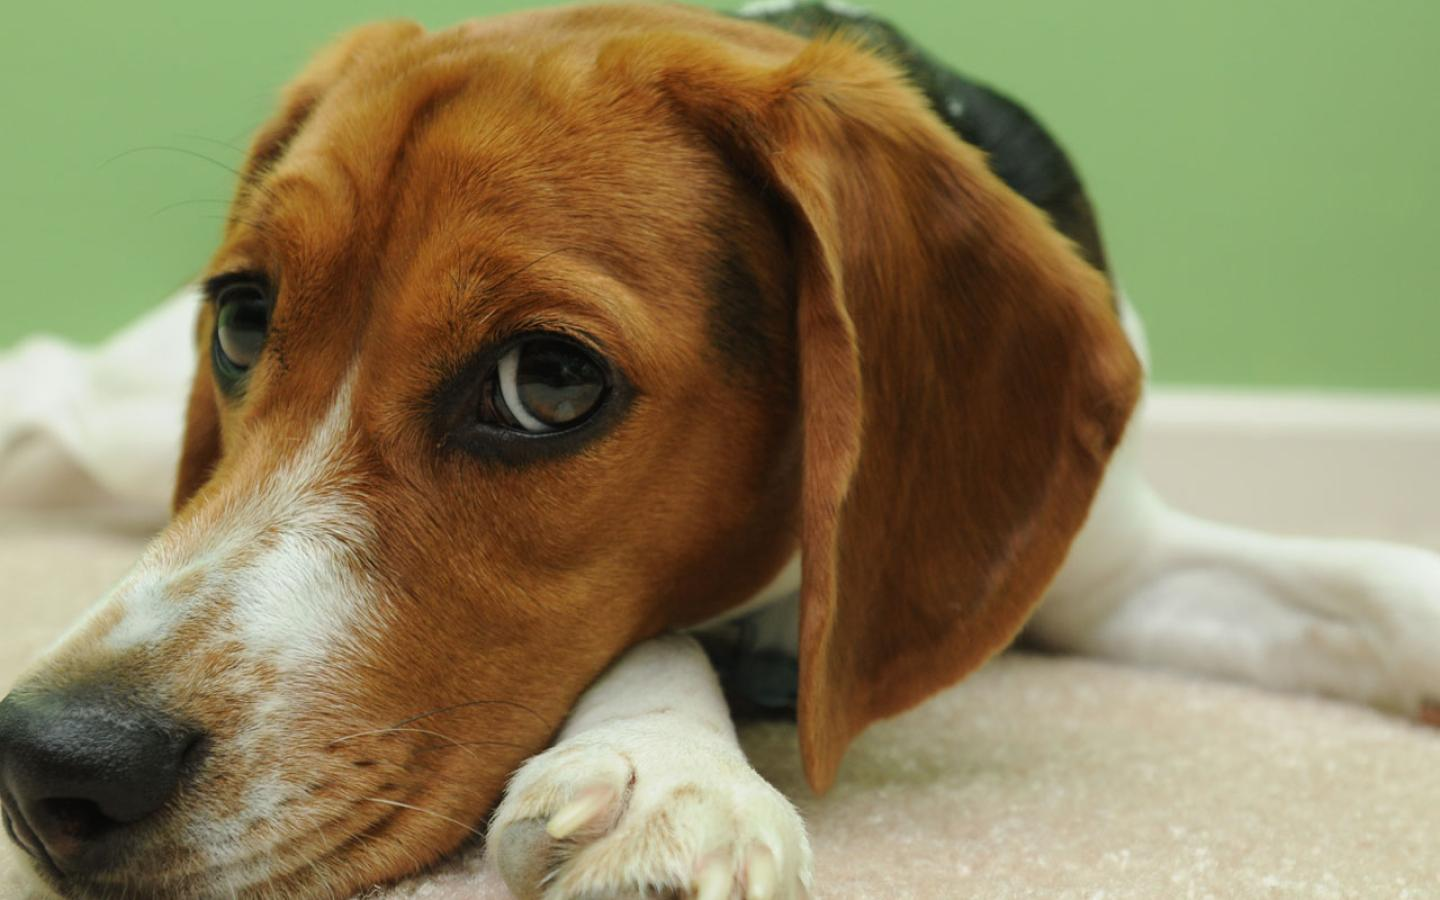 Beagle - In Contemplative Mood Wallpaper #4 1440 x 900